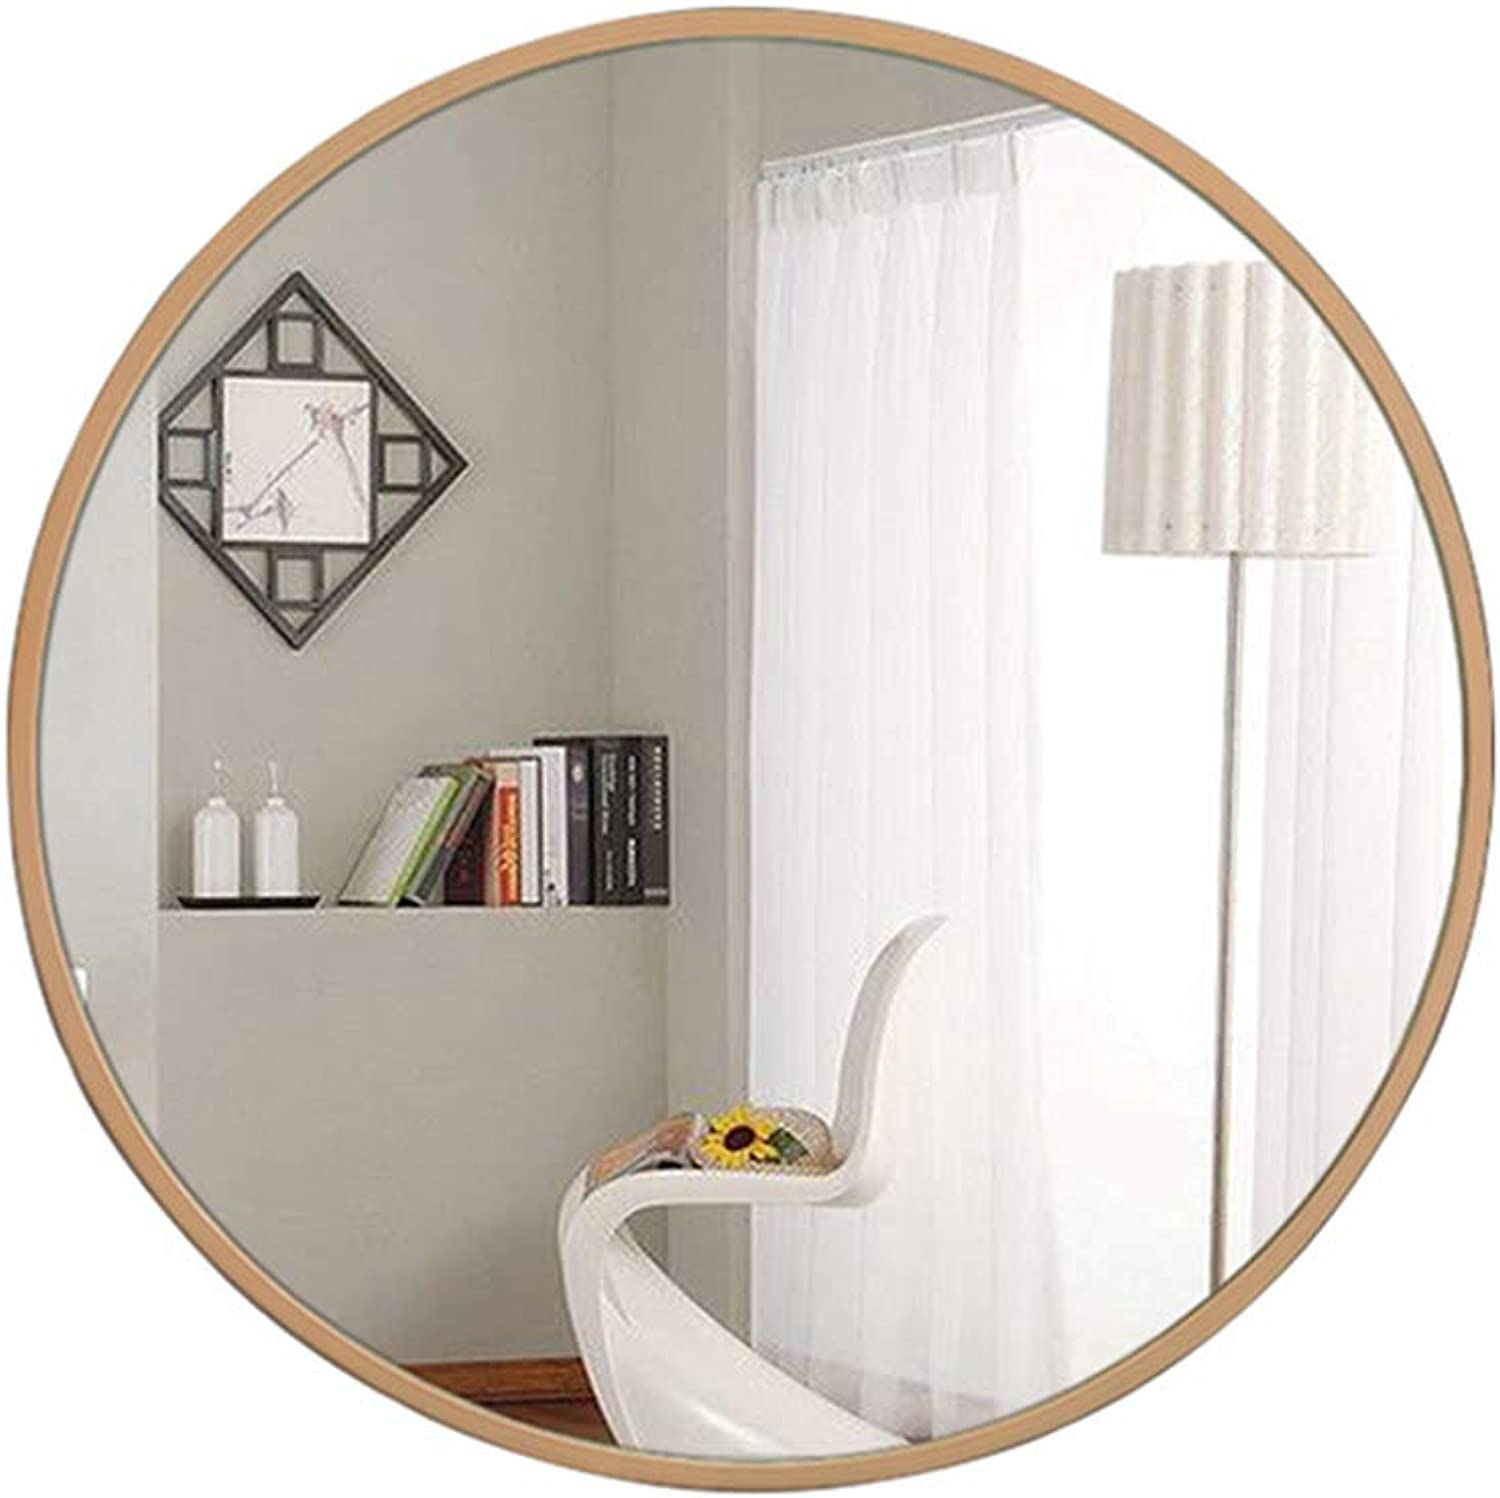 Round Mirror Bathroom Mirror Diameter 50cm 60cm 70cm Bathroom Makeup Mirror Wall-Mounted Nordic Style Aluminum Frame Hd Mirror Environmentally Friendly and Durable